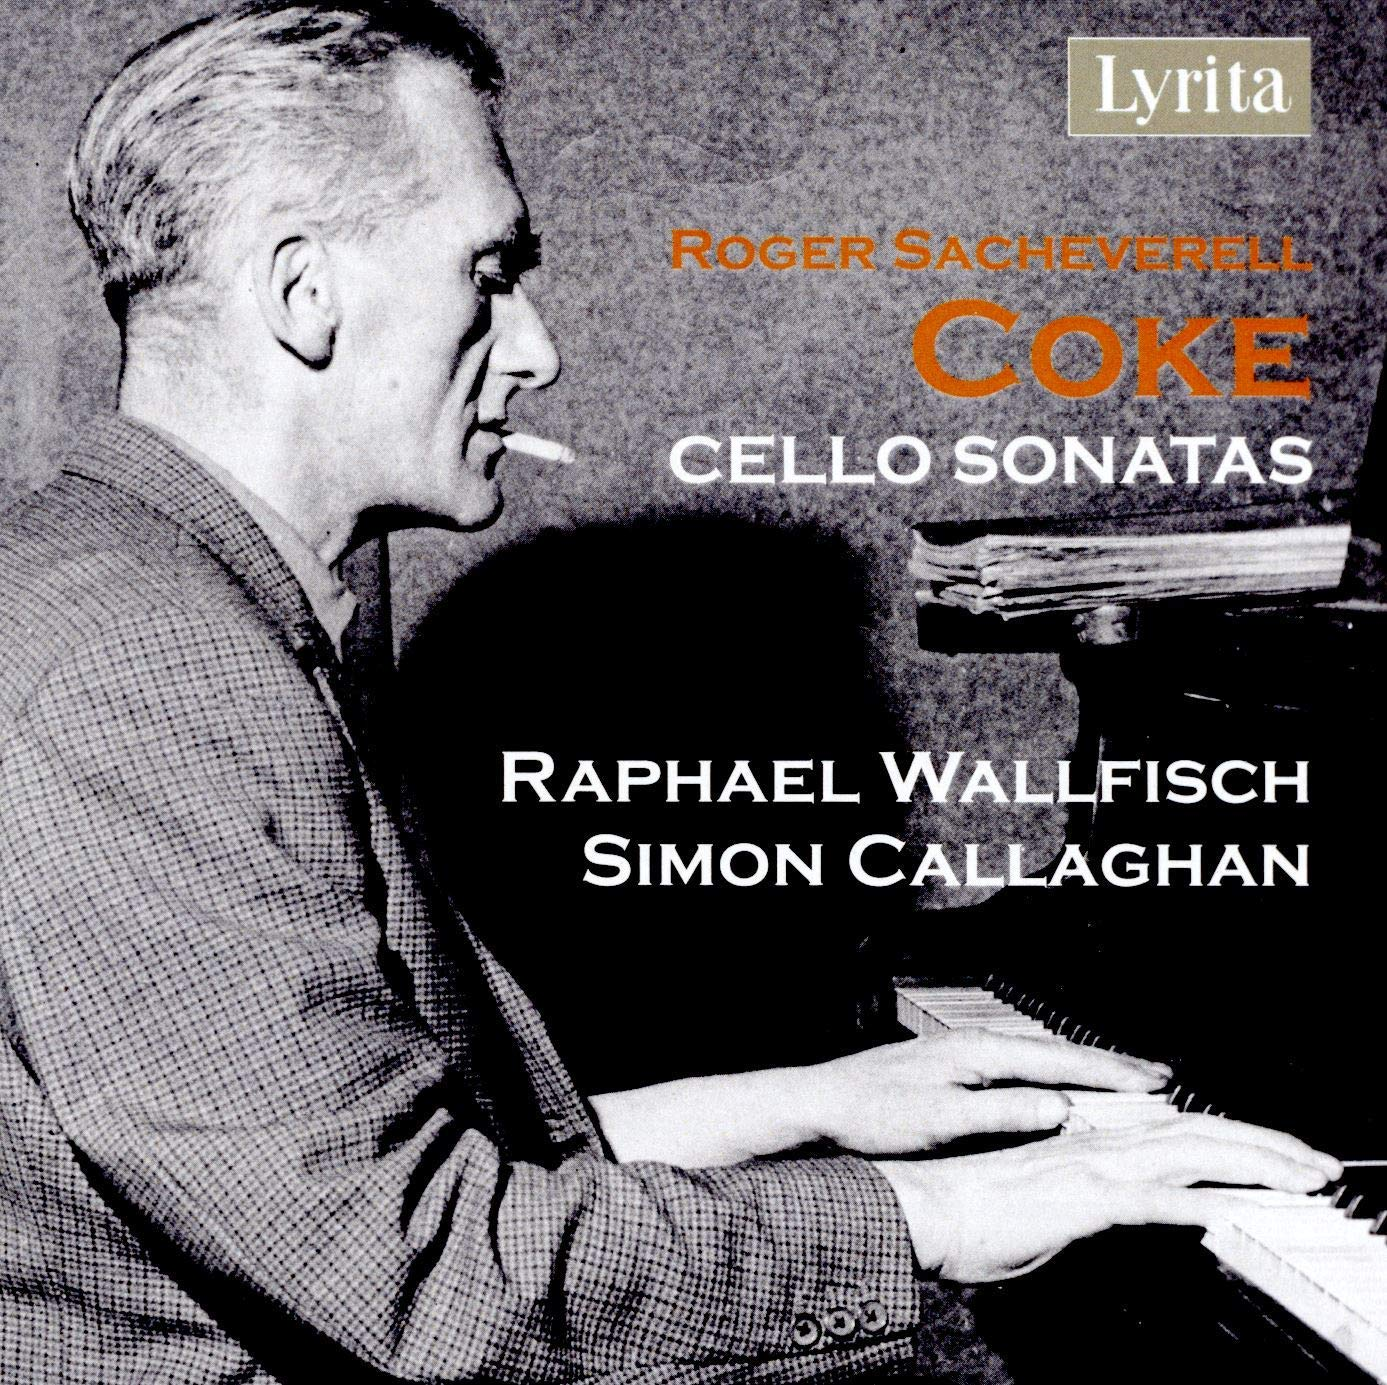 Review of COKE Cello Sonatas